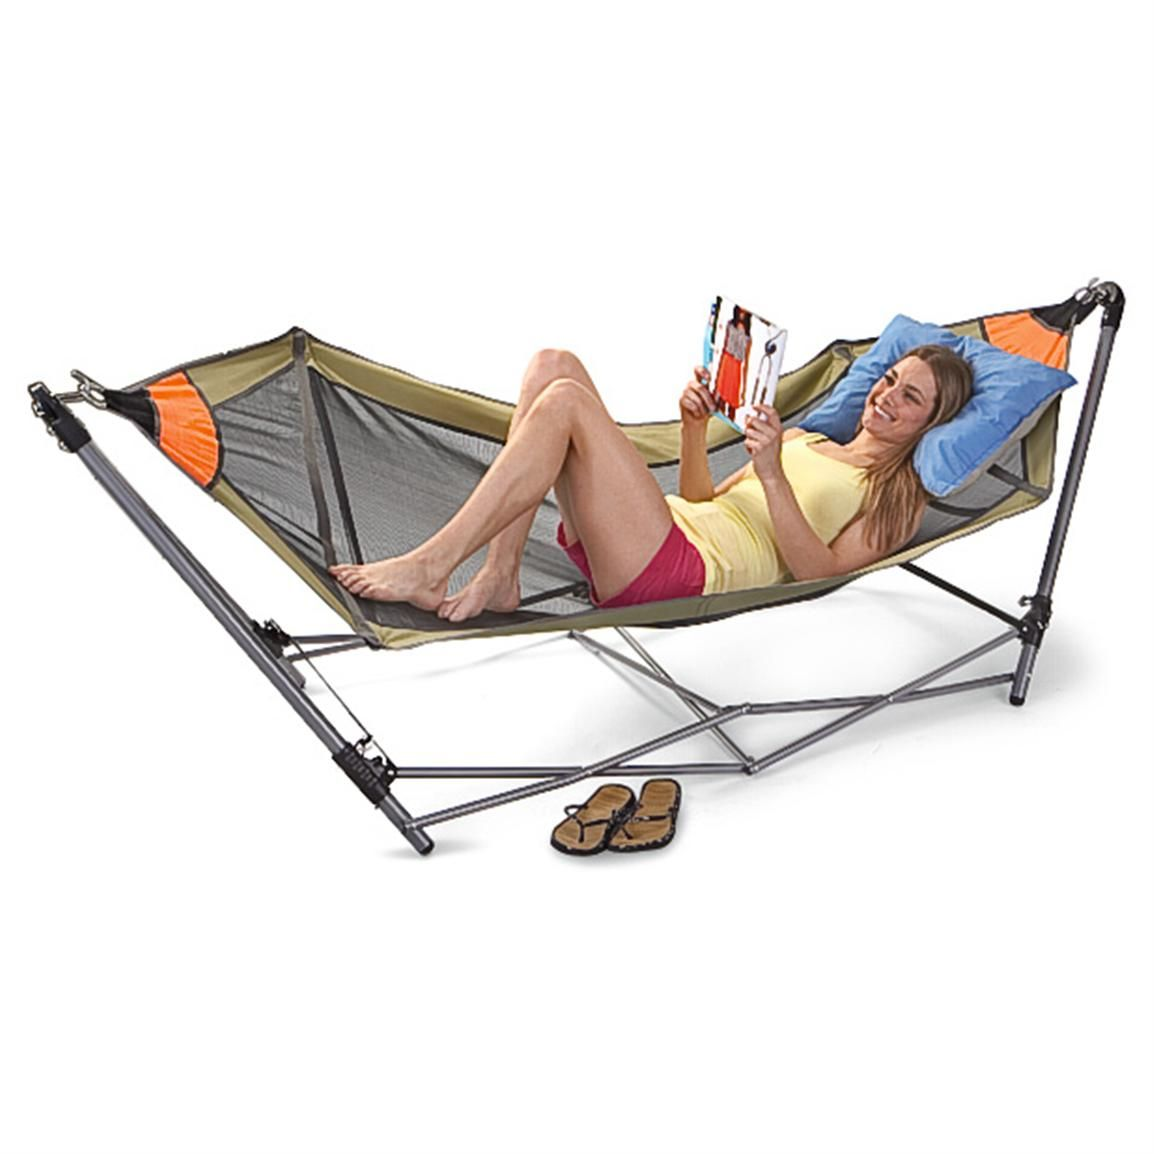 Guide gear portable folding hammock 172580 hammocks at sportsman s - Guide Gear Portable Folding Hammock